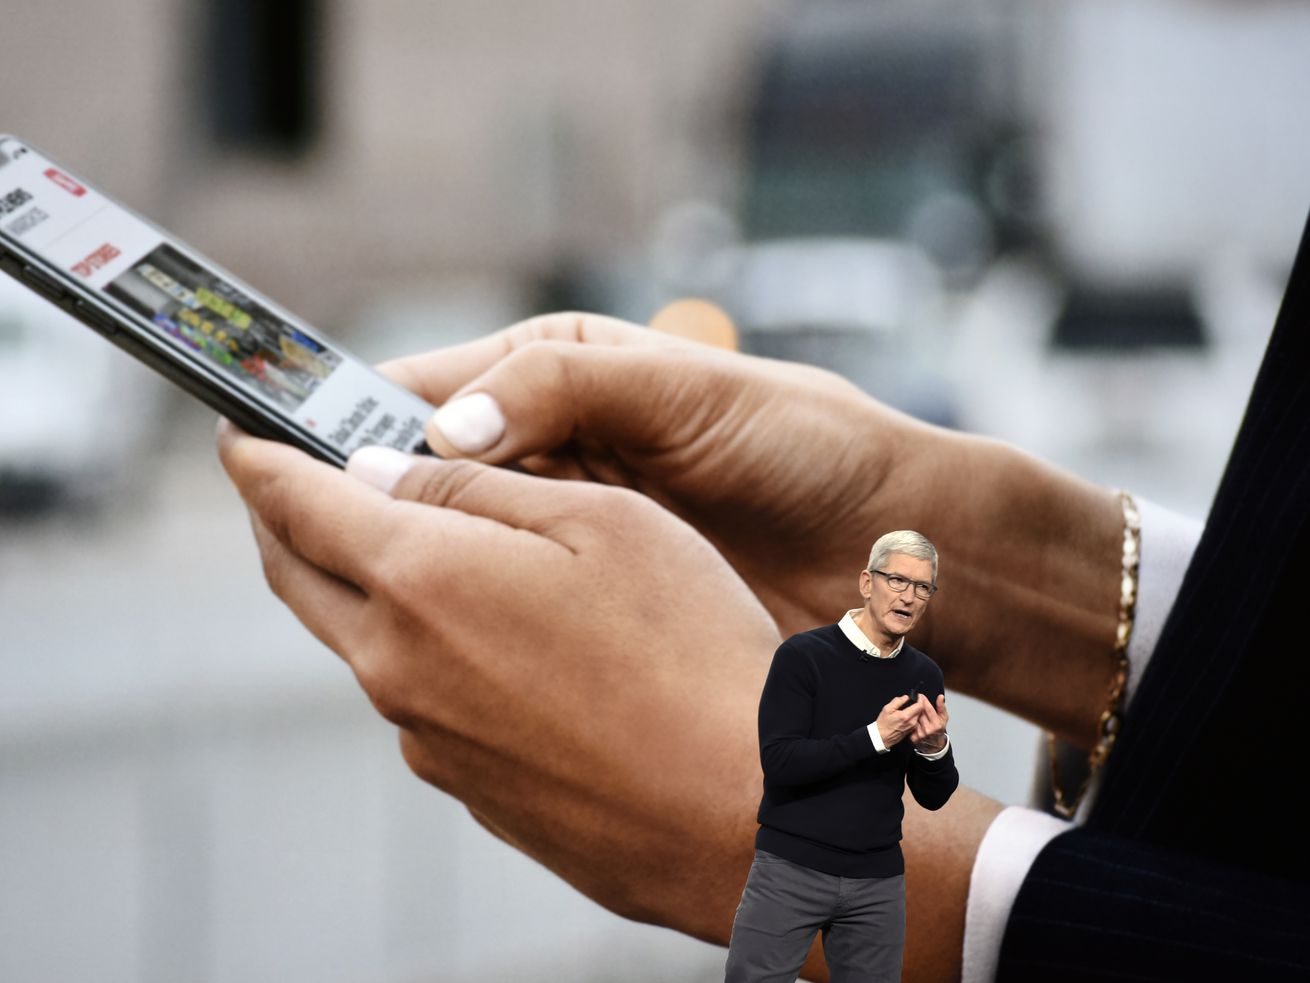 Apple CEO Tim Cook onstage in front of a wall-sized screen showing two hands holding an iPhone.